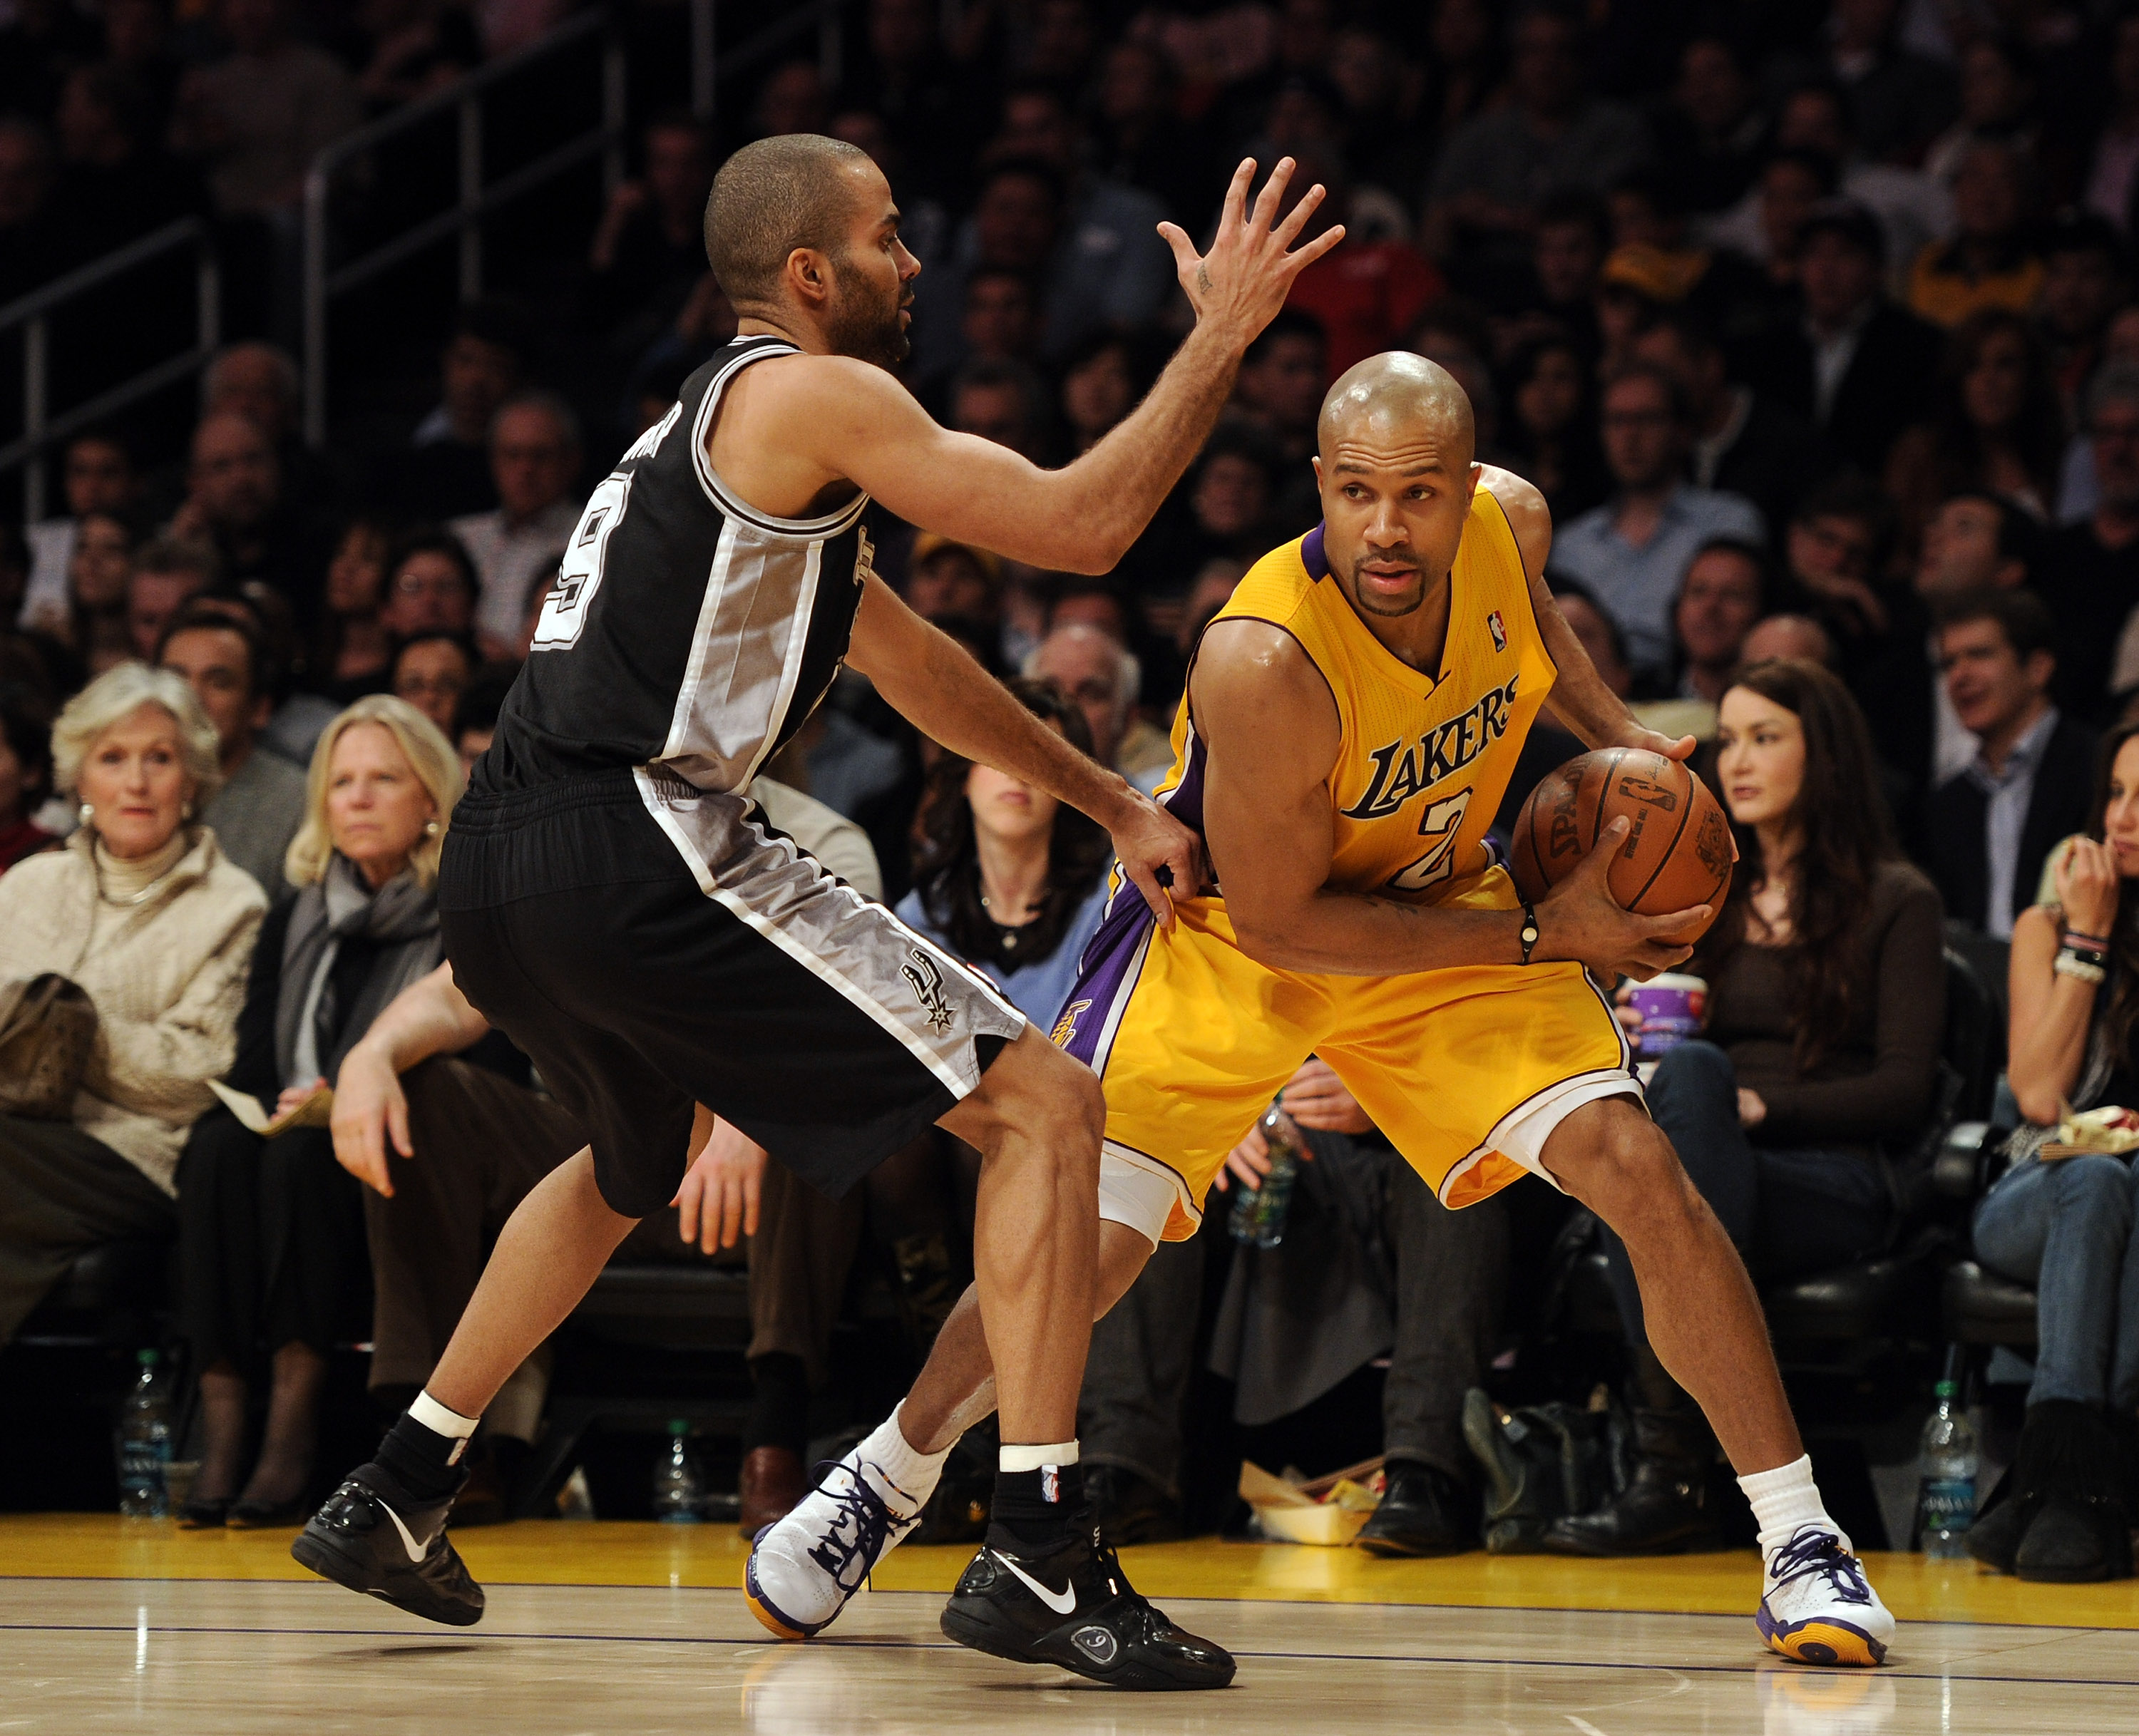 LOS ANGELES, CA - FEBRUARY 03:  Derek Fisher #2 of the Los Angeles Lakers is guarded by Tony Parker #9 of the San Antonio Spurs at Staples Center on February 3, 2011 in Los Angeles, California.  NOTE TO USER: User expressly acknowledges and agrees that, b